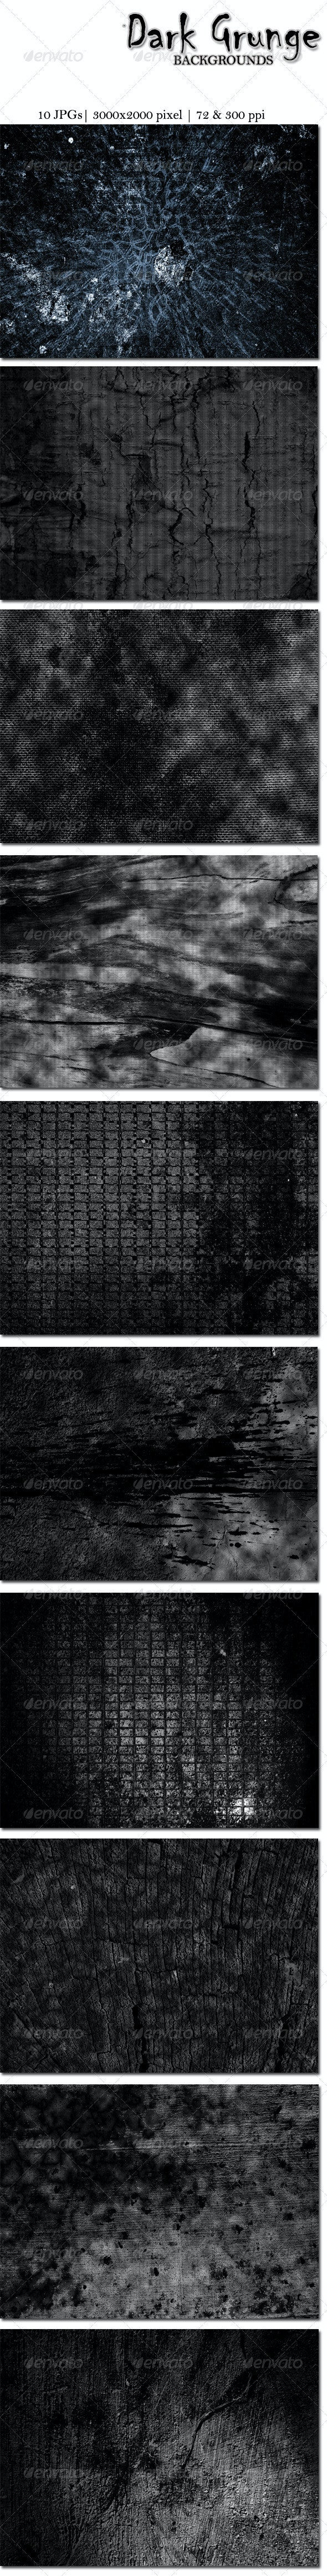 10 Dark Grunge Backgrounds - Miscellaneous Backgrounds